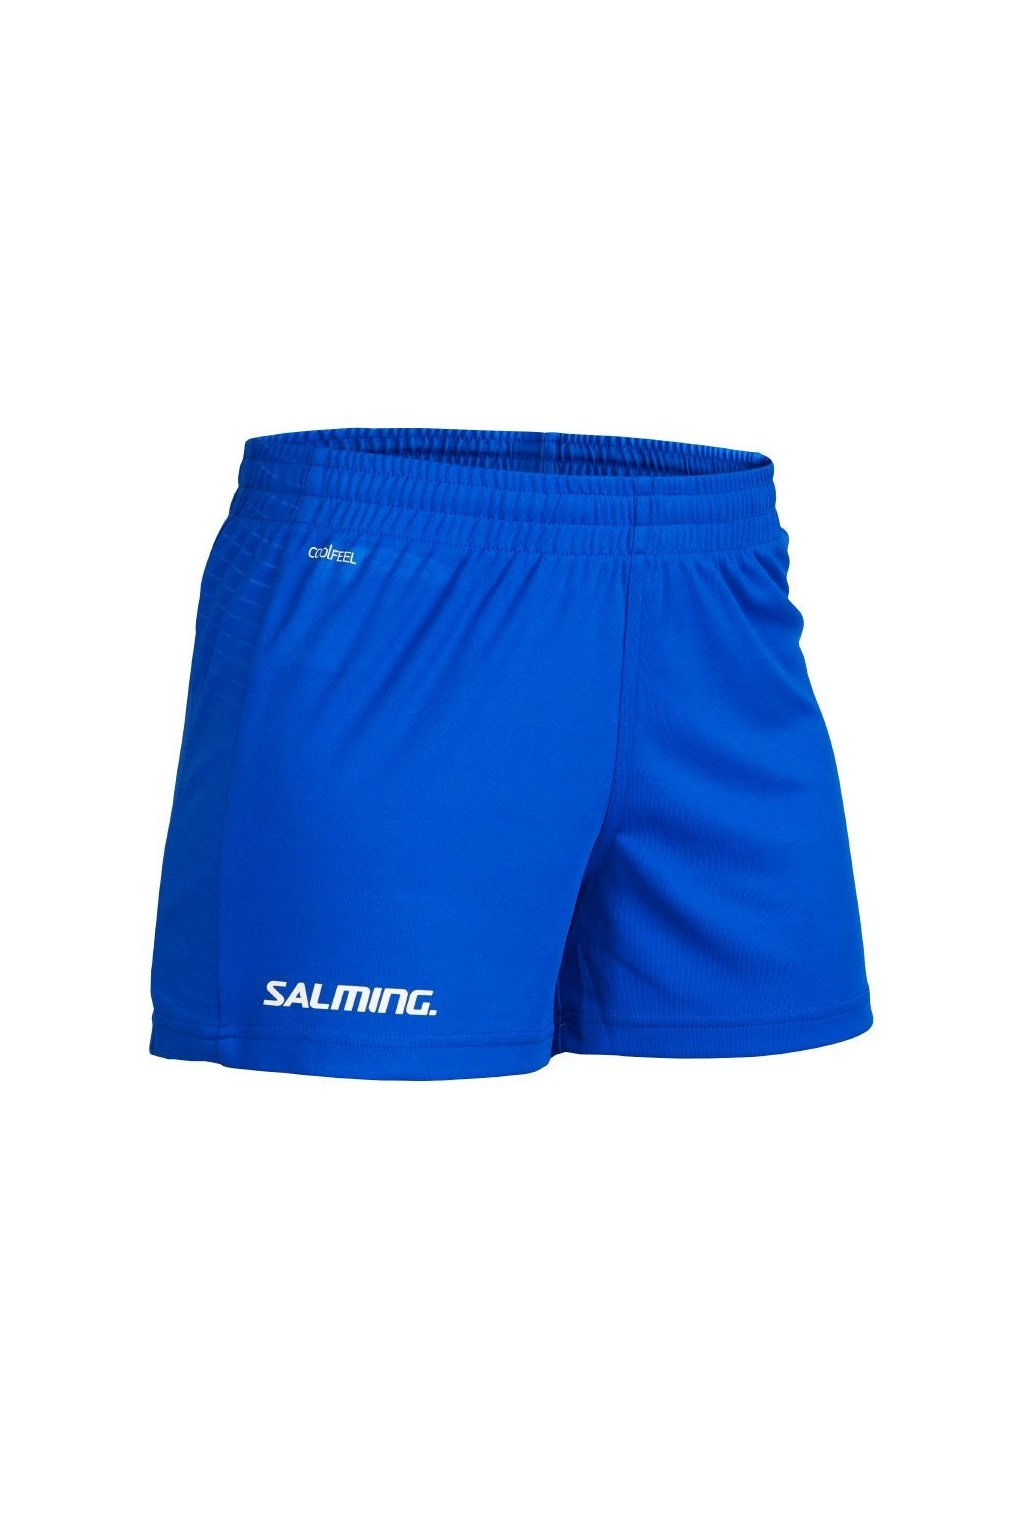 SALMING Diamond Game Shorts Women Royal Blue L